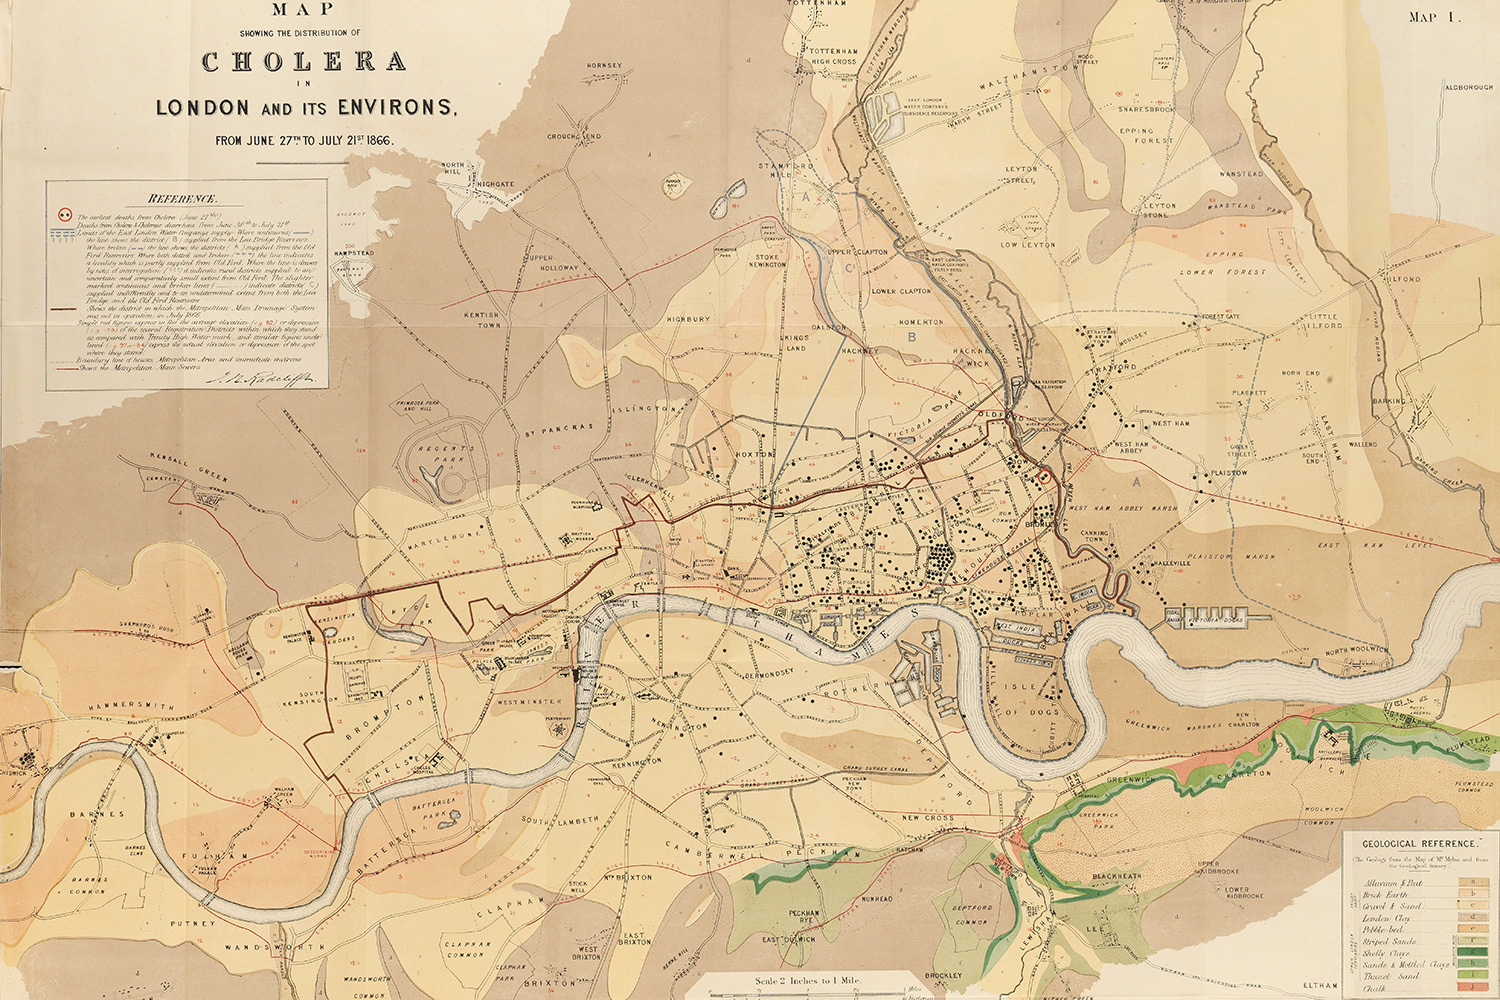 The image is a photo of map of London highlighting cases of cholera there some 154 years ago.